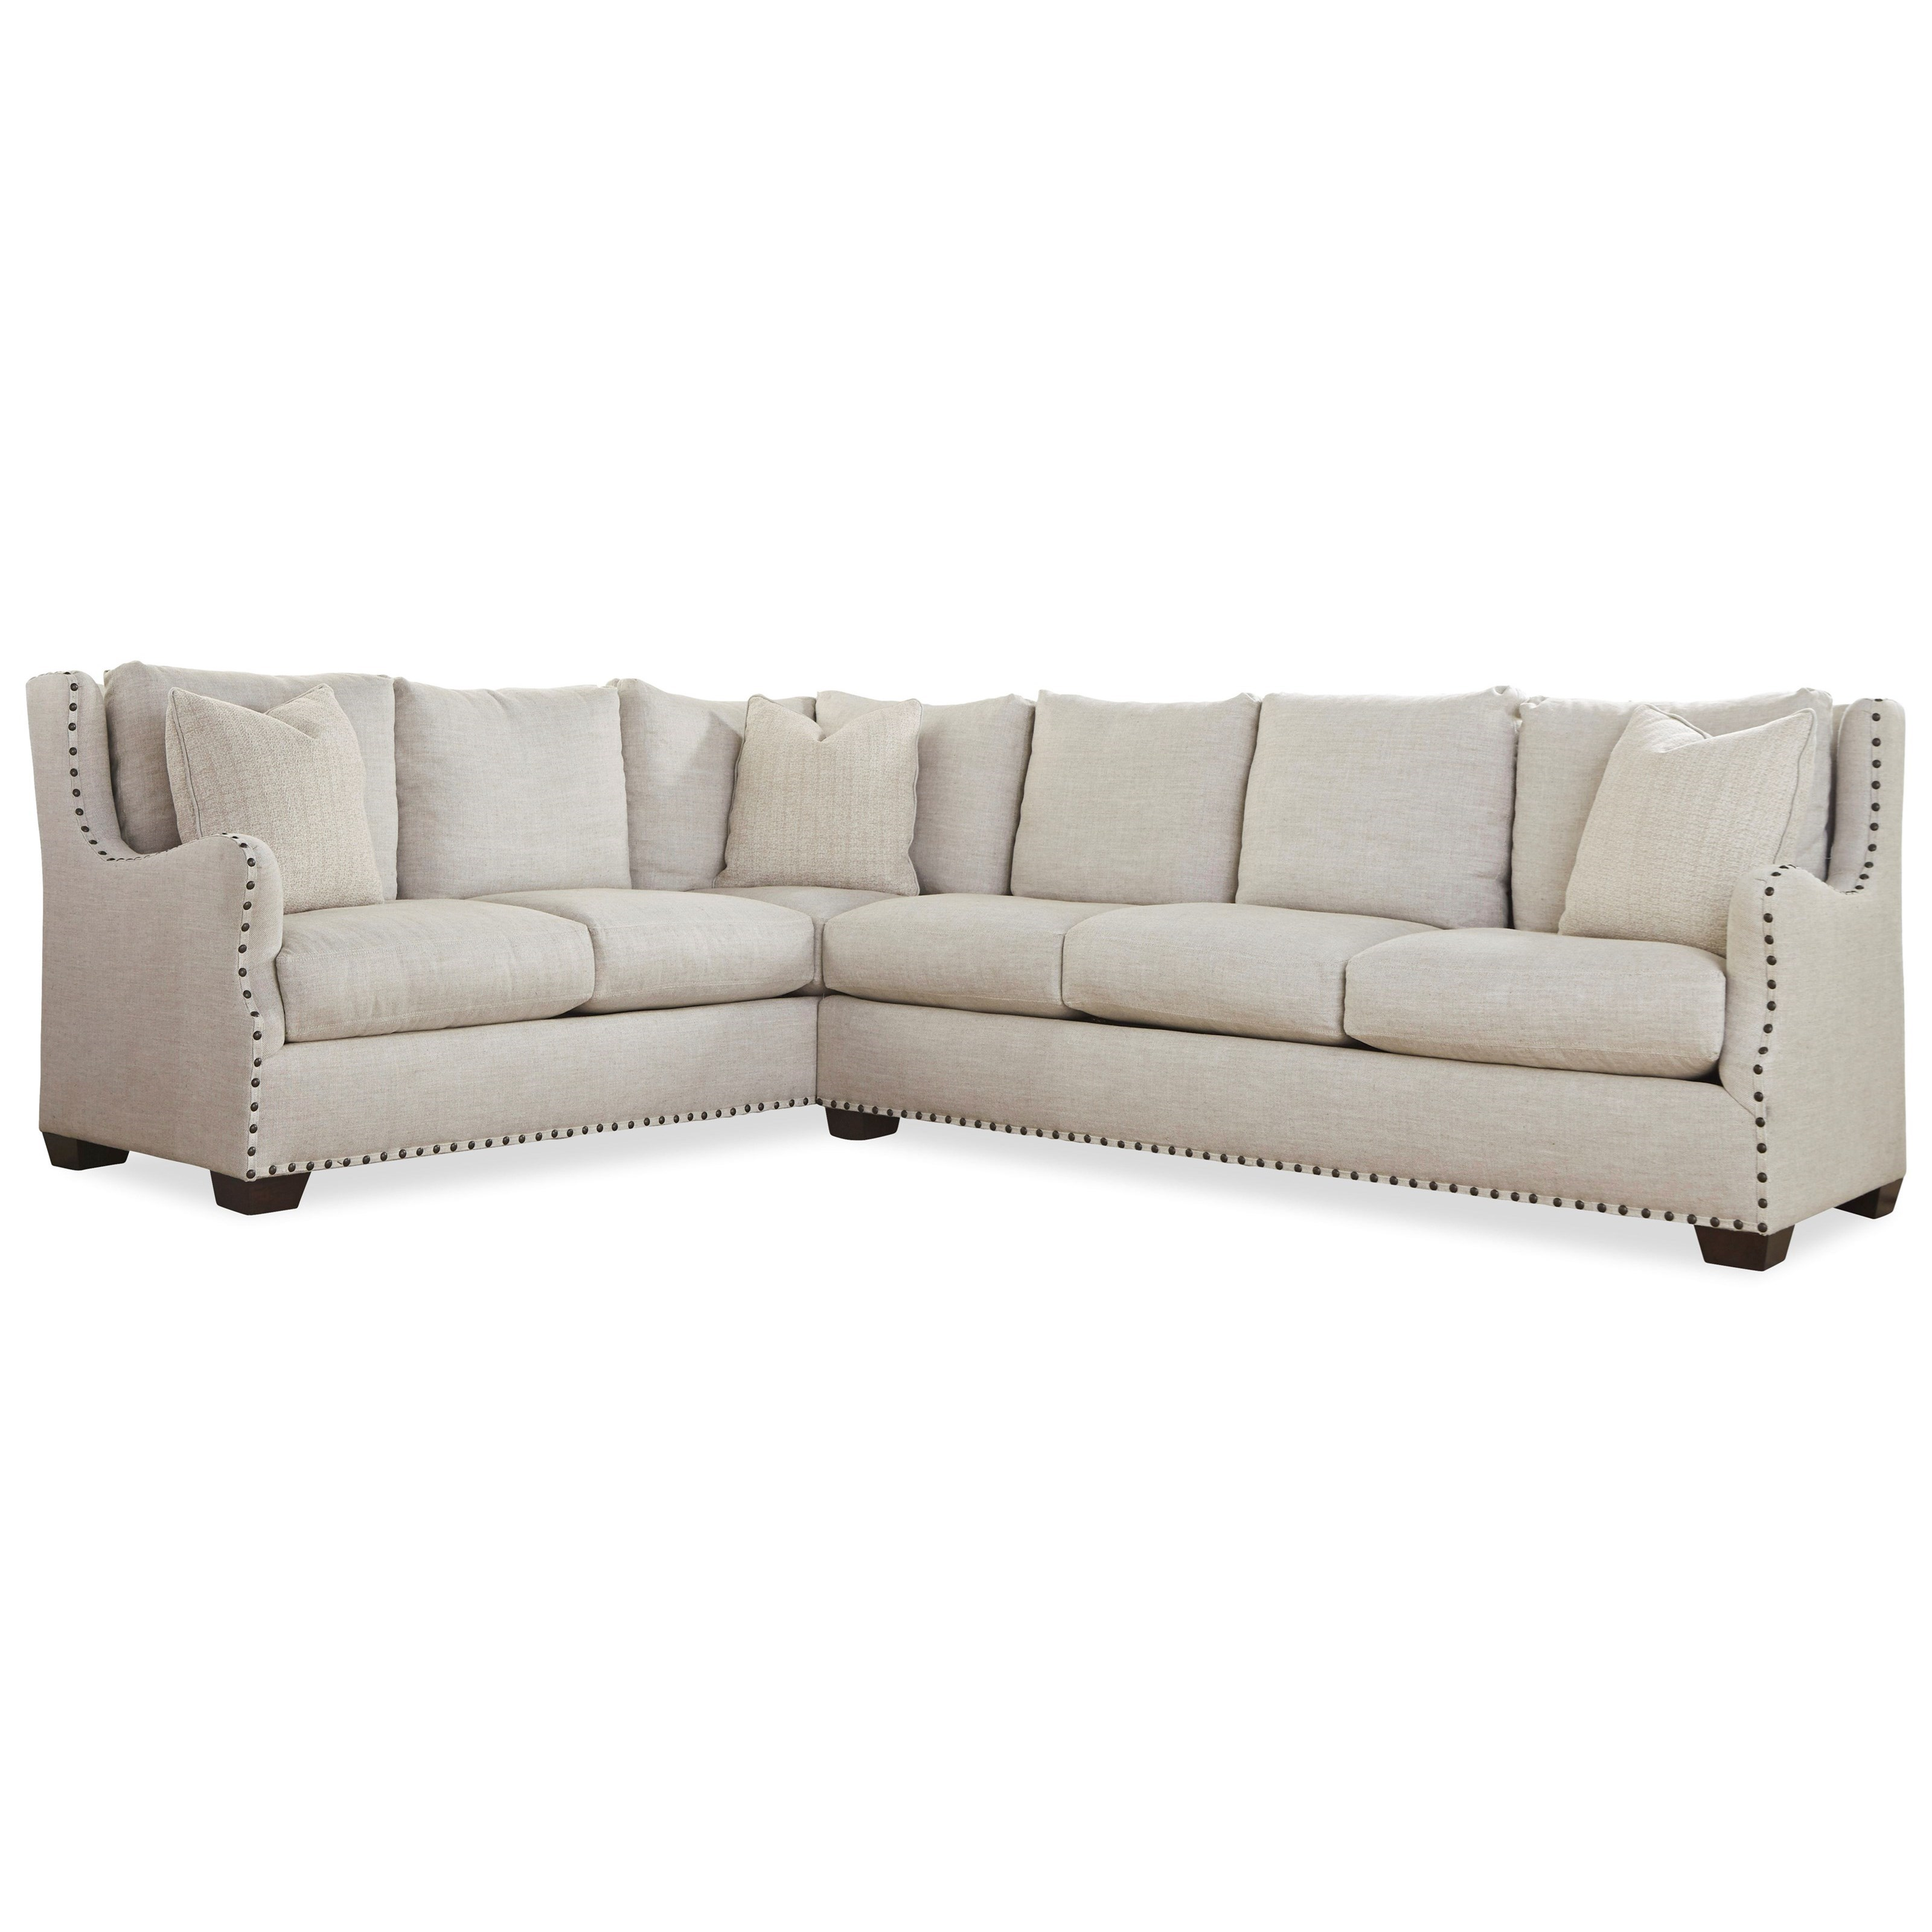 Connor Sectional Sofa by Universal at Baer's Furniture